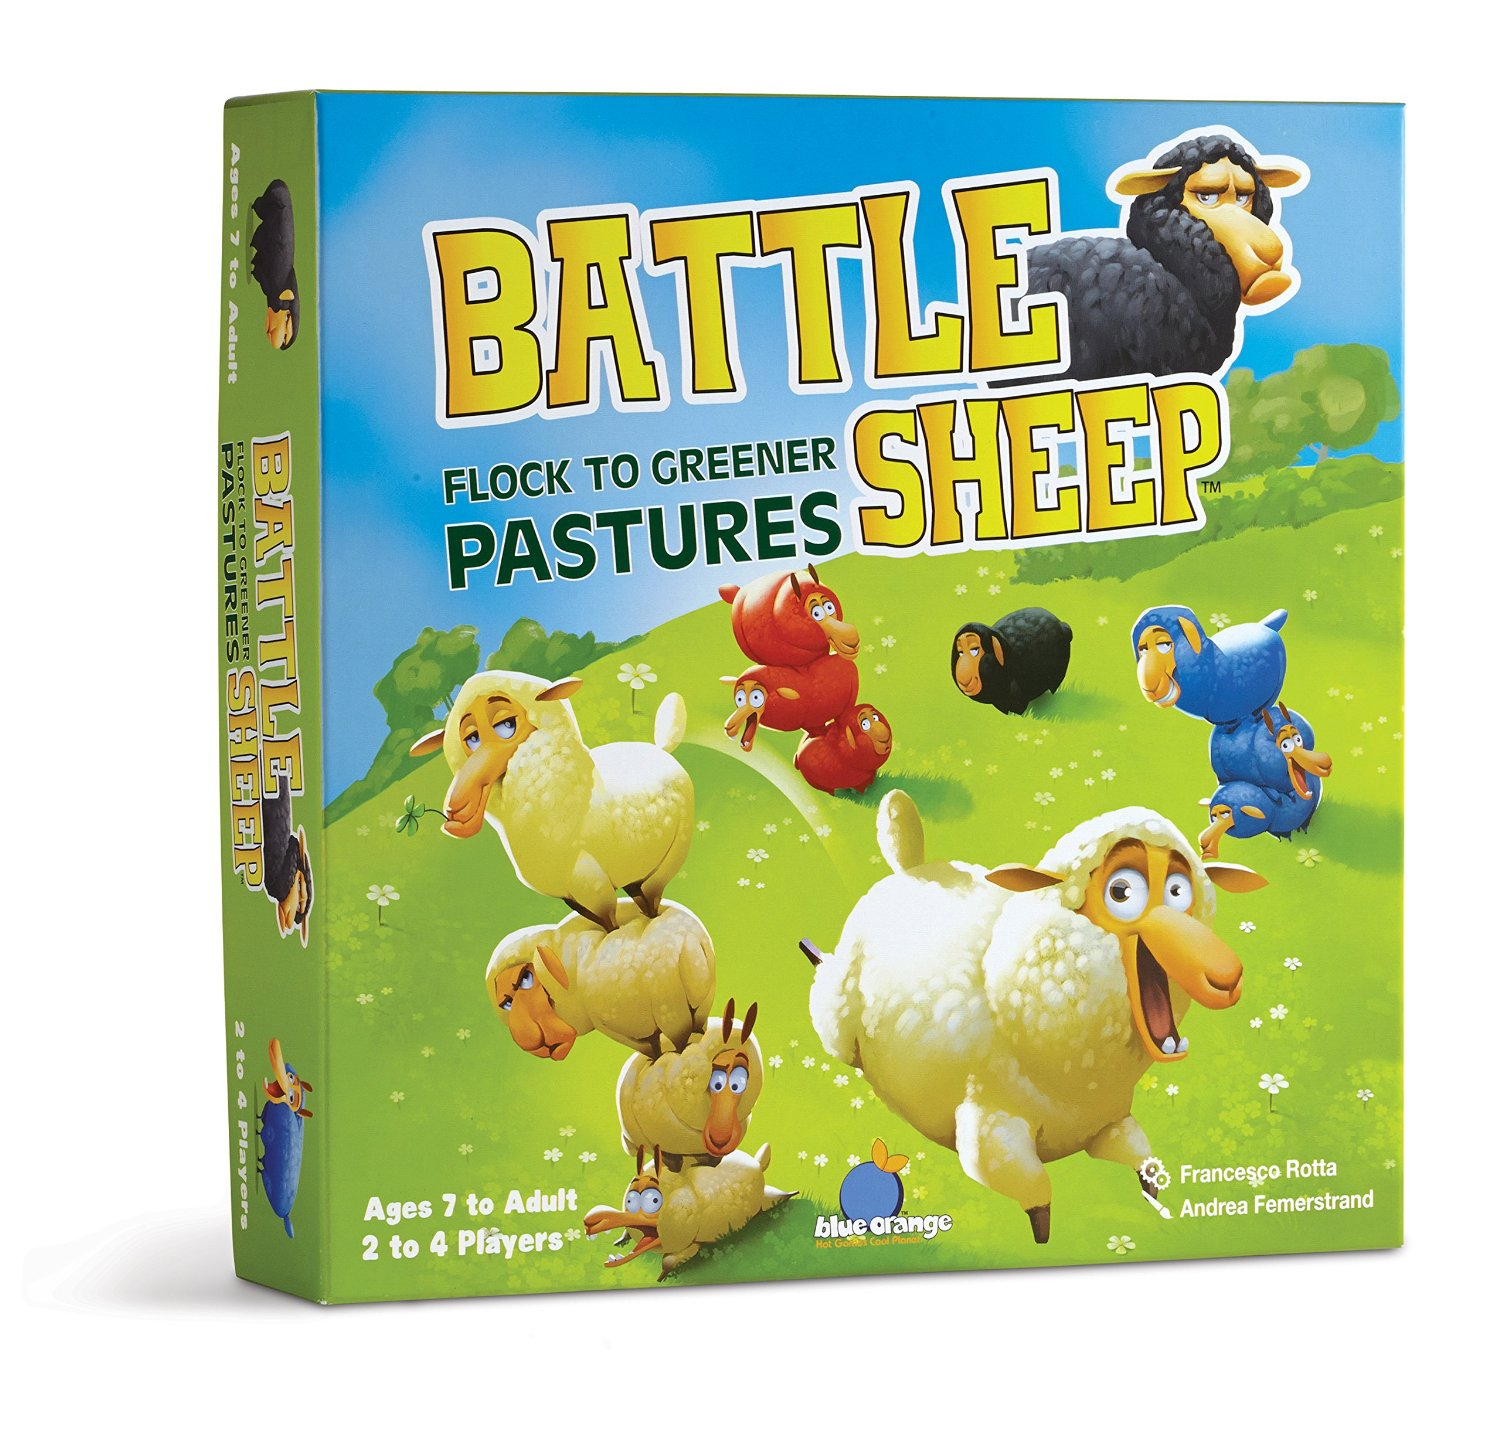 Battlesheep1